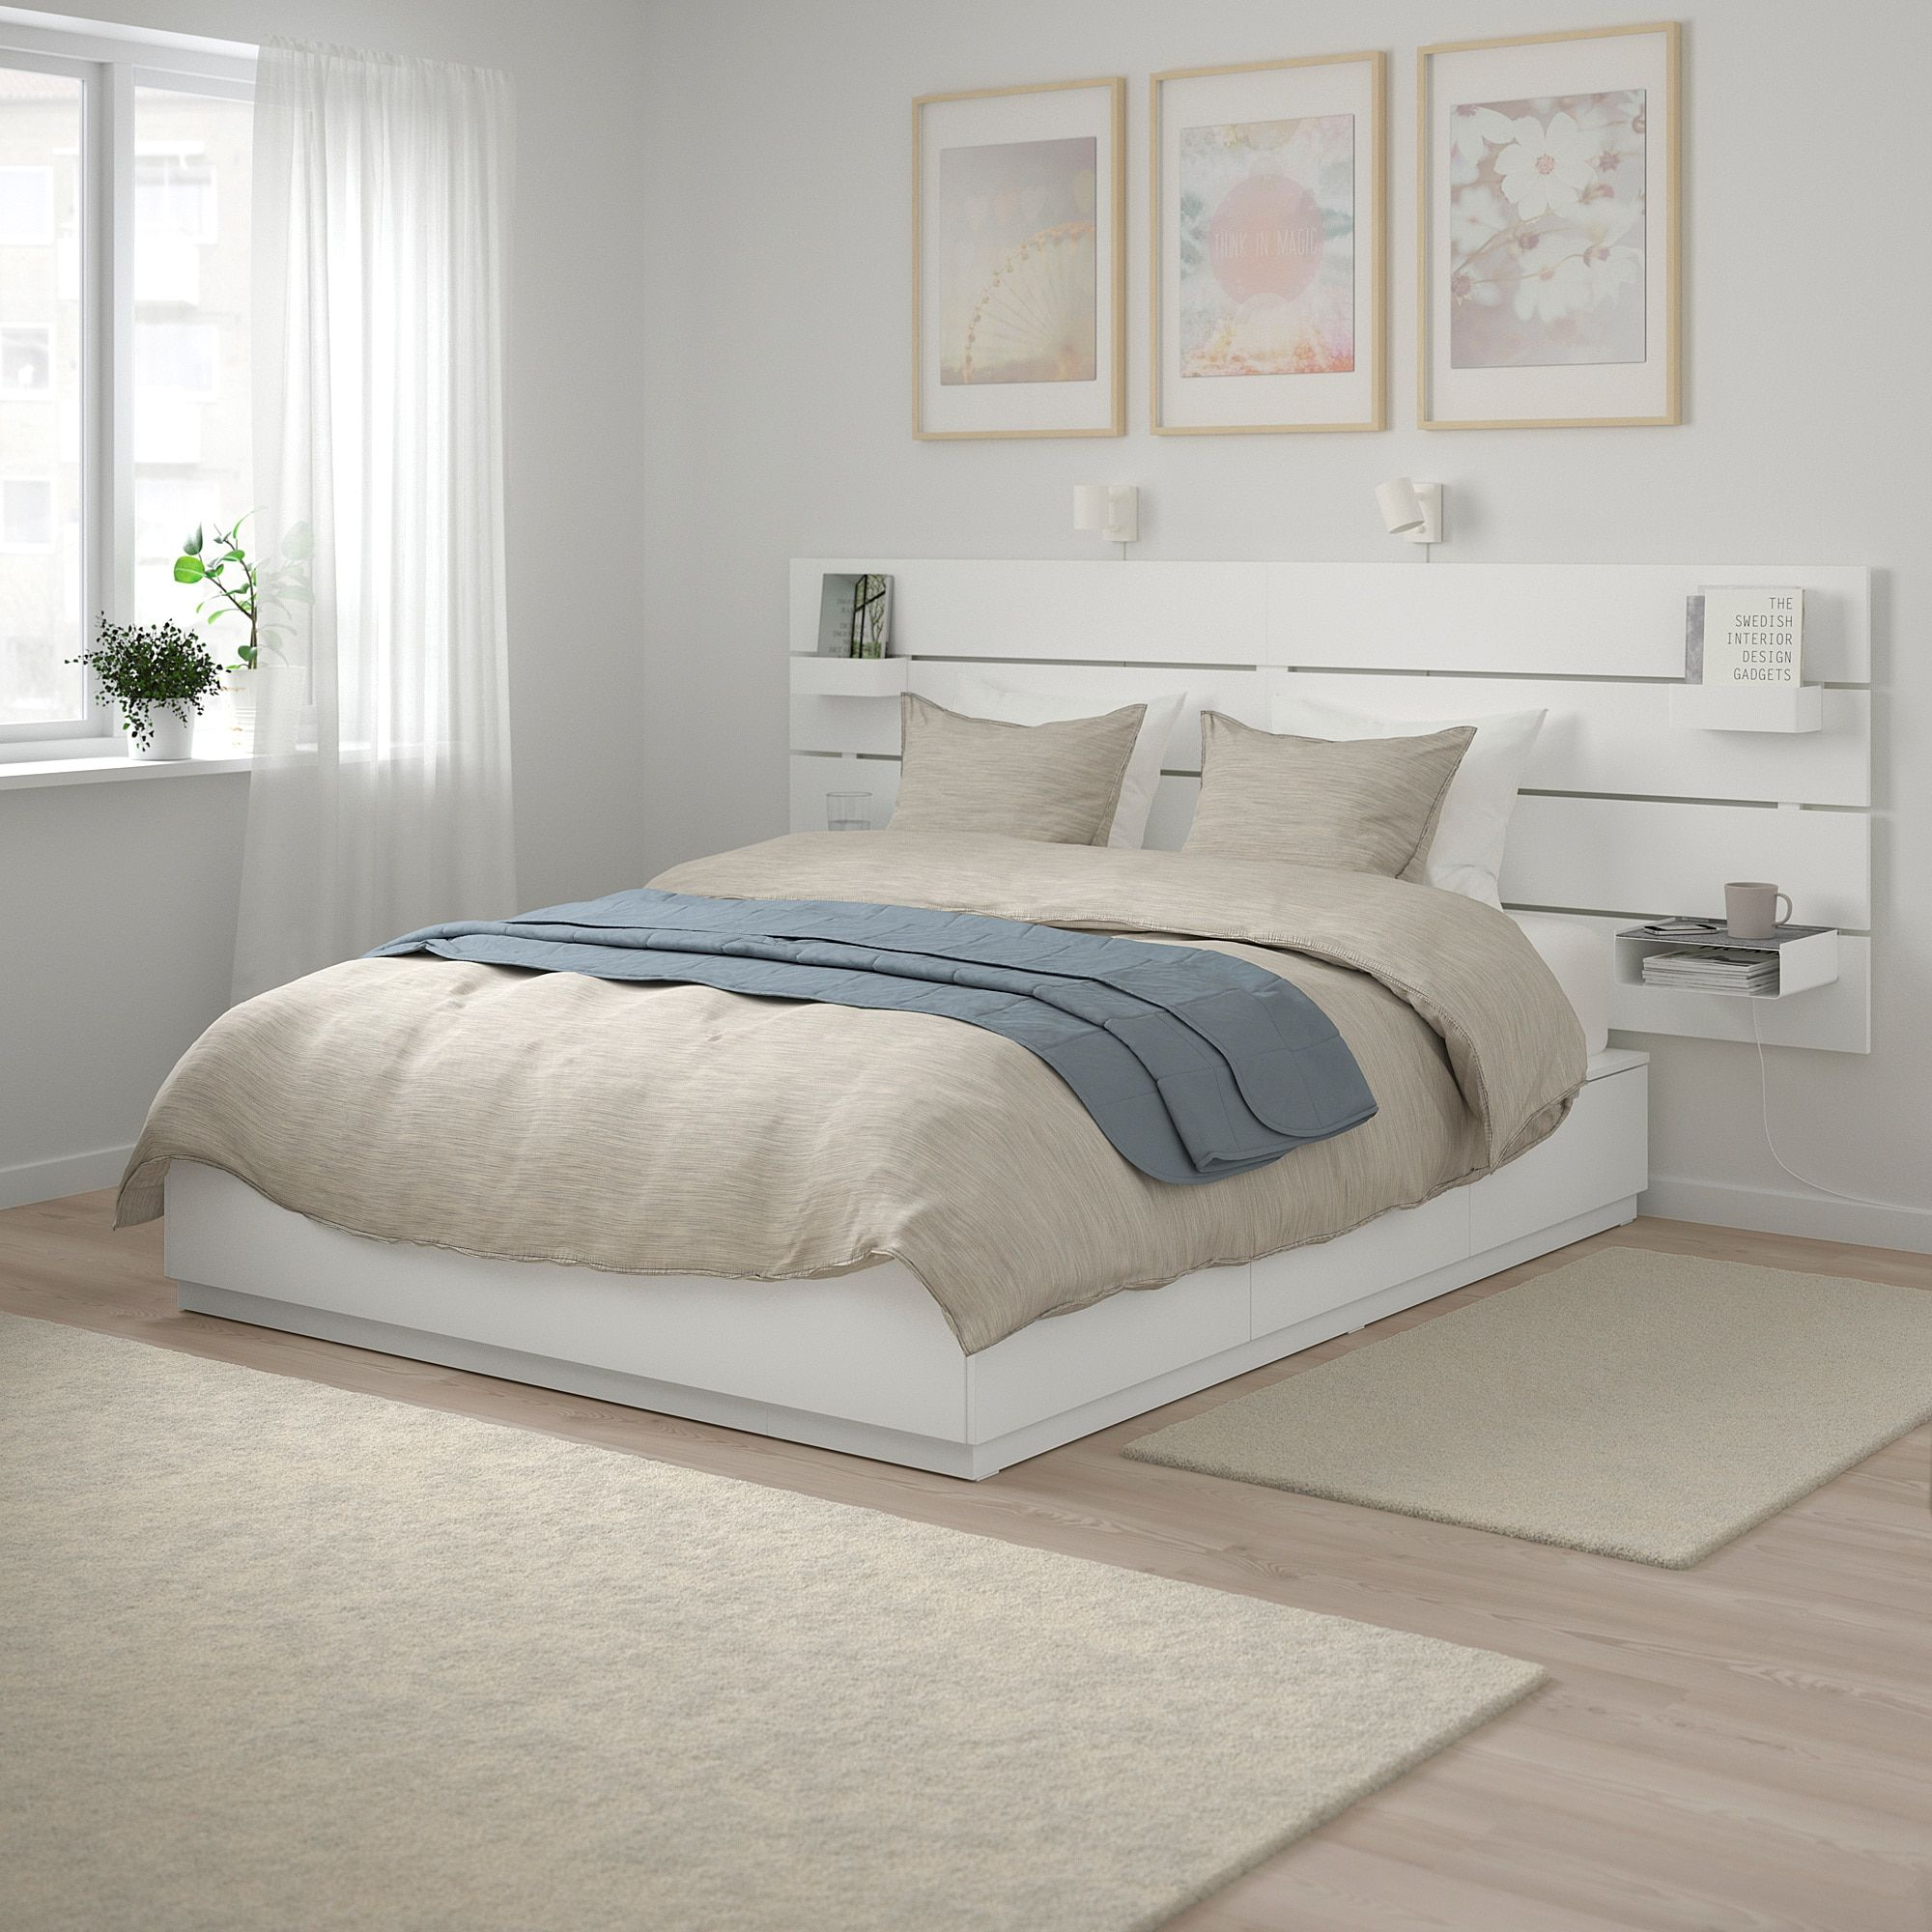 Nordli Bed With Headboard And Storage White Ikea Headboards For Beds Bed Frame With Storage White Bed Frame